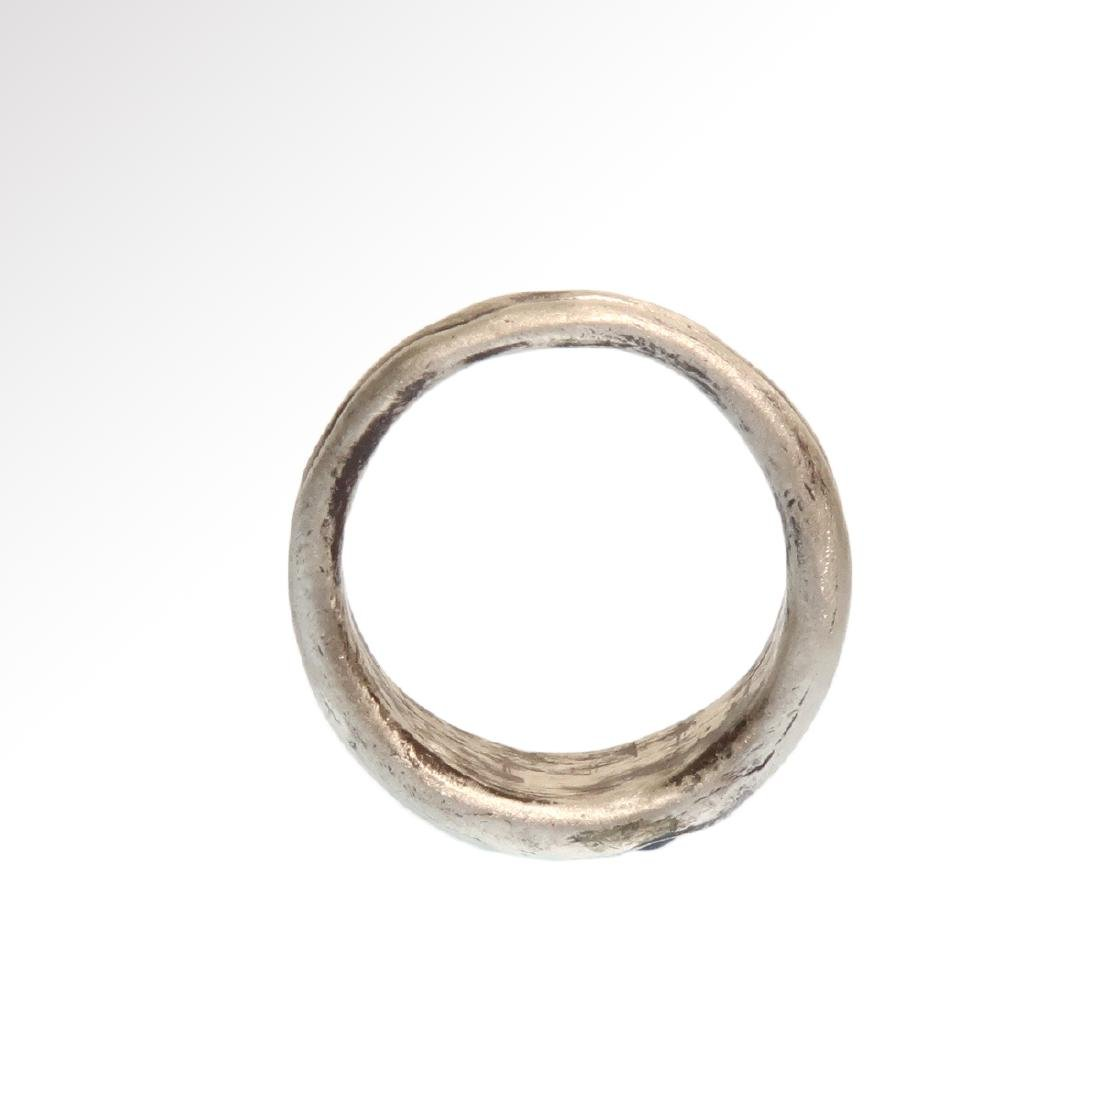 Roman Double Silver Ring with Garnets, c. 3rd Century - 7